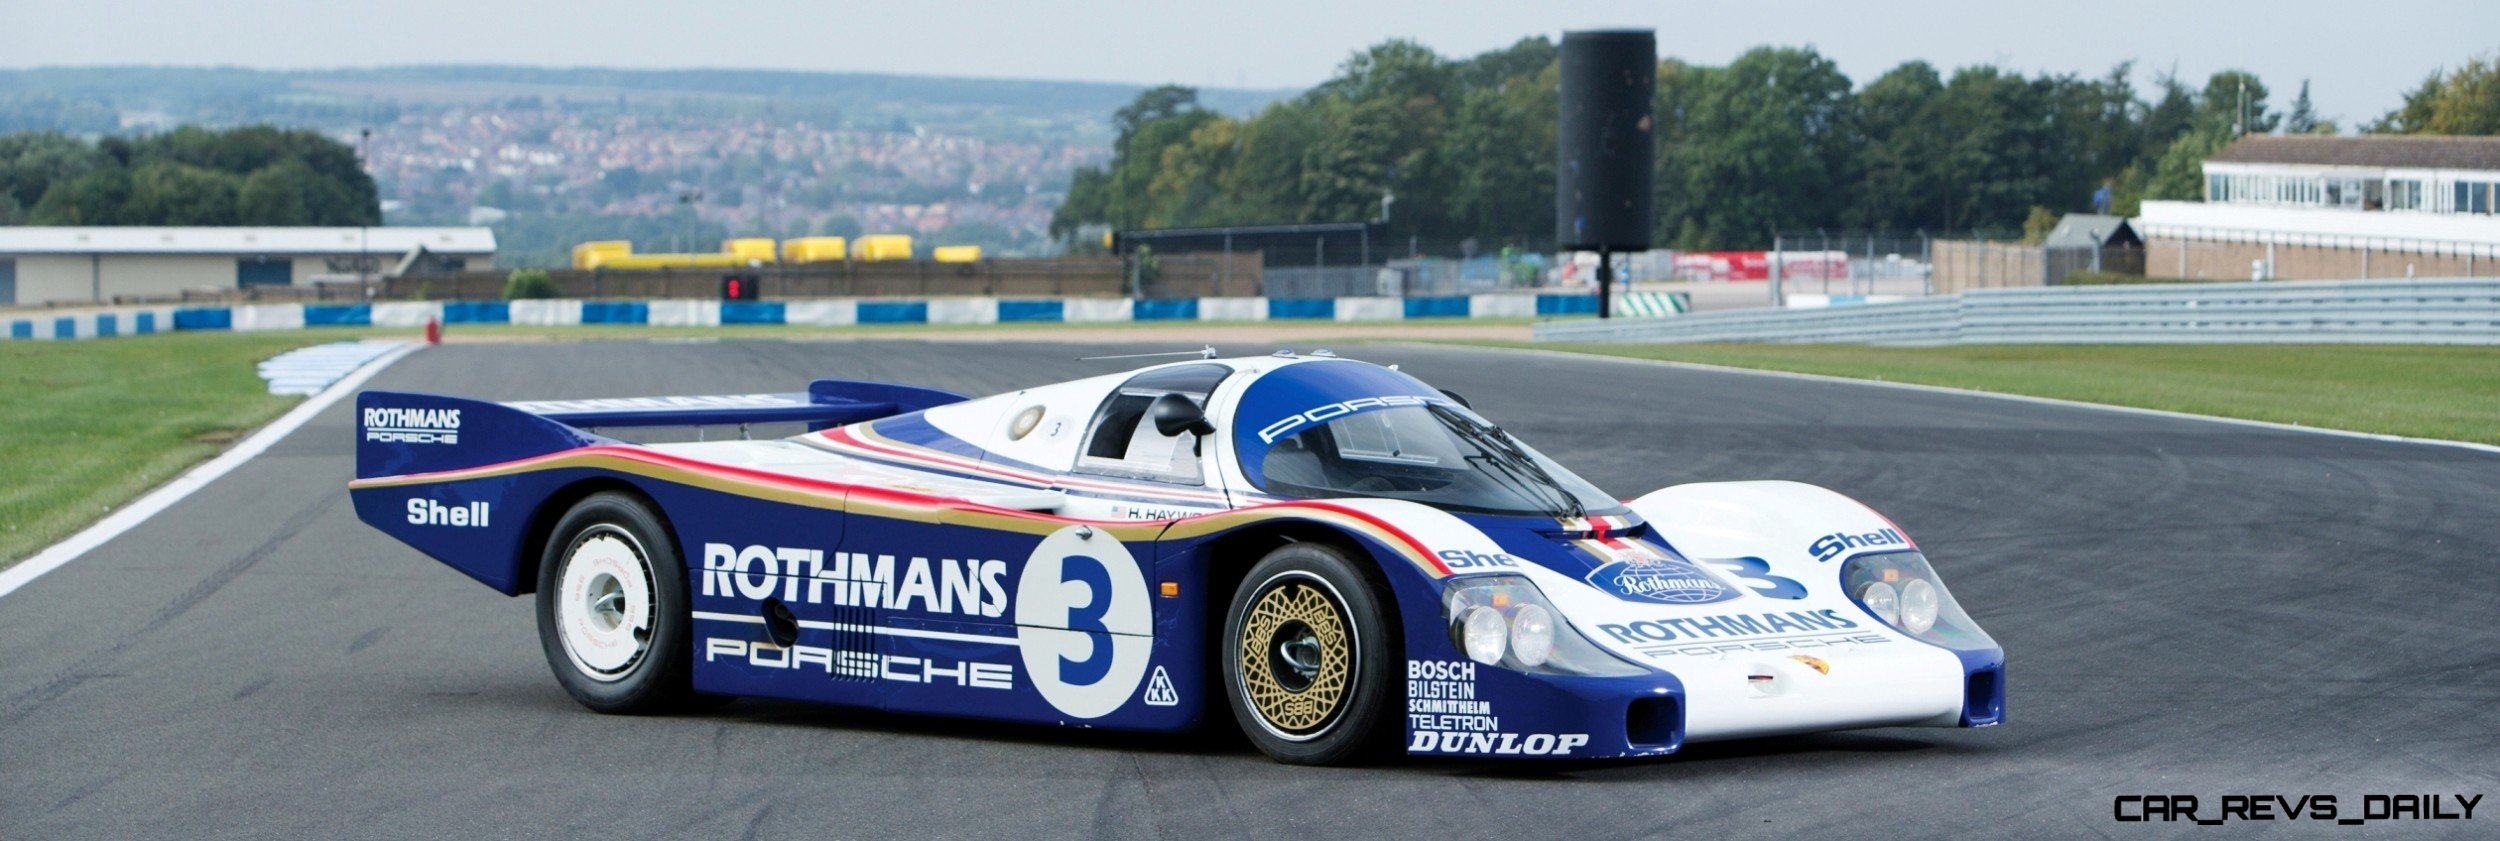 RM Auctions Paris Feb 2014 - 1982 Porsche 956 Group C Sports-Prototype 2